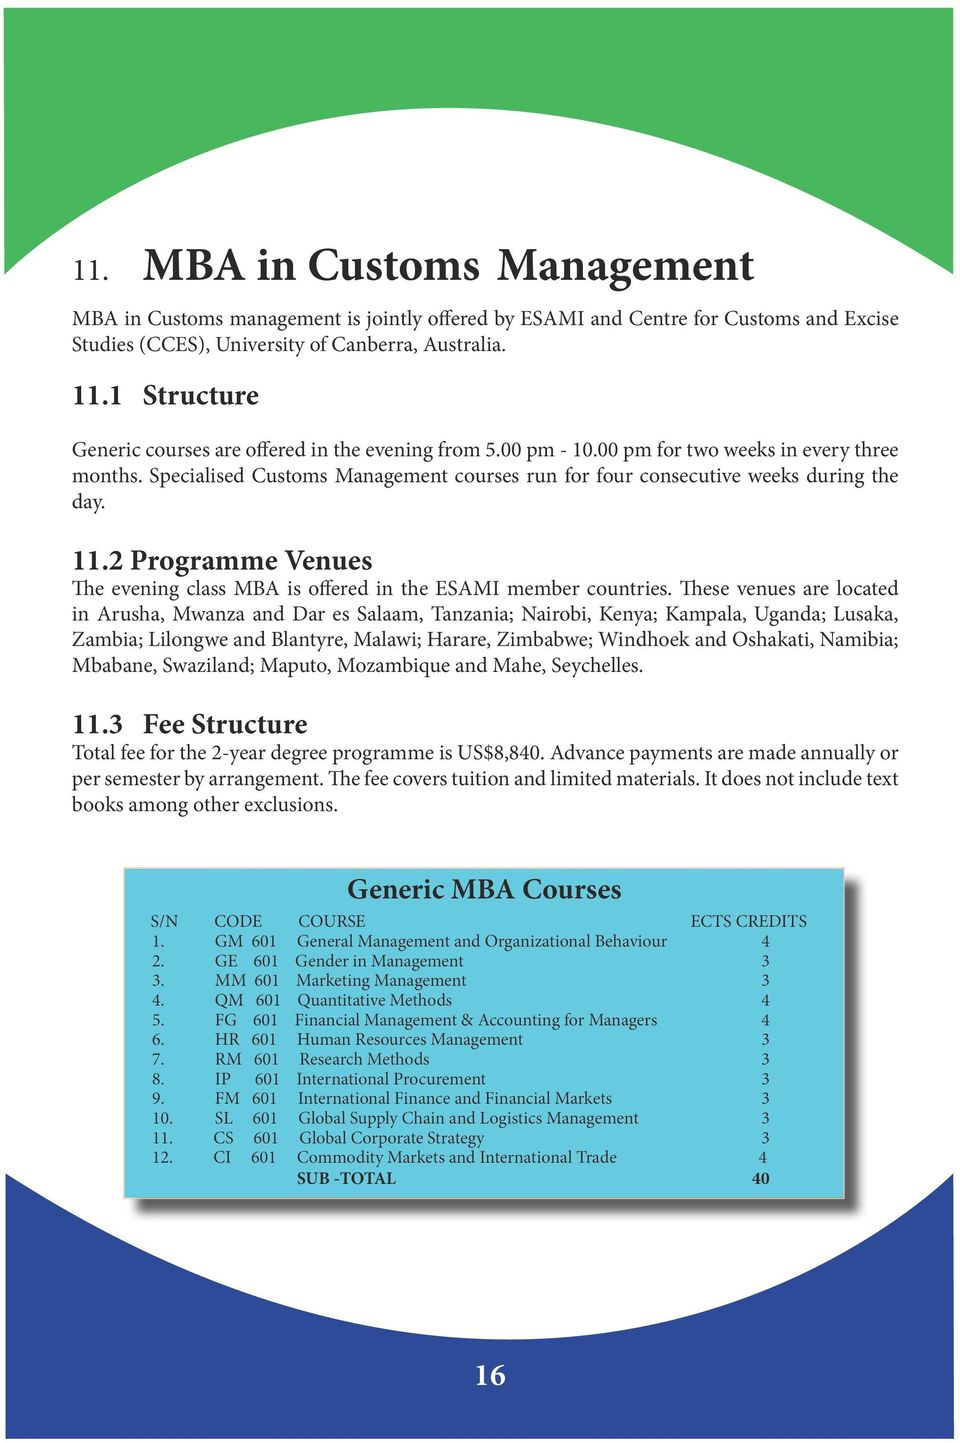 Specialised Customs Management courses run for four consecutive weeks during the day. 11.2 Programme Venues The evening class MBA is offered in the ESAMI member countries.